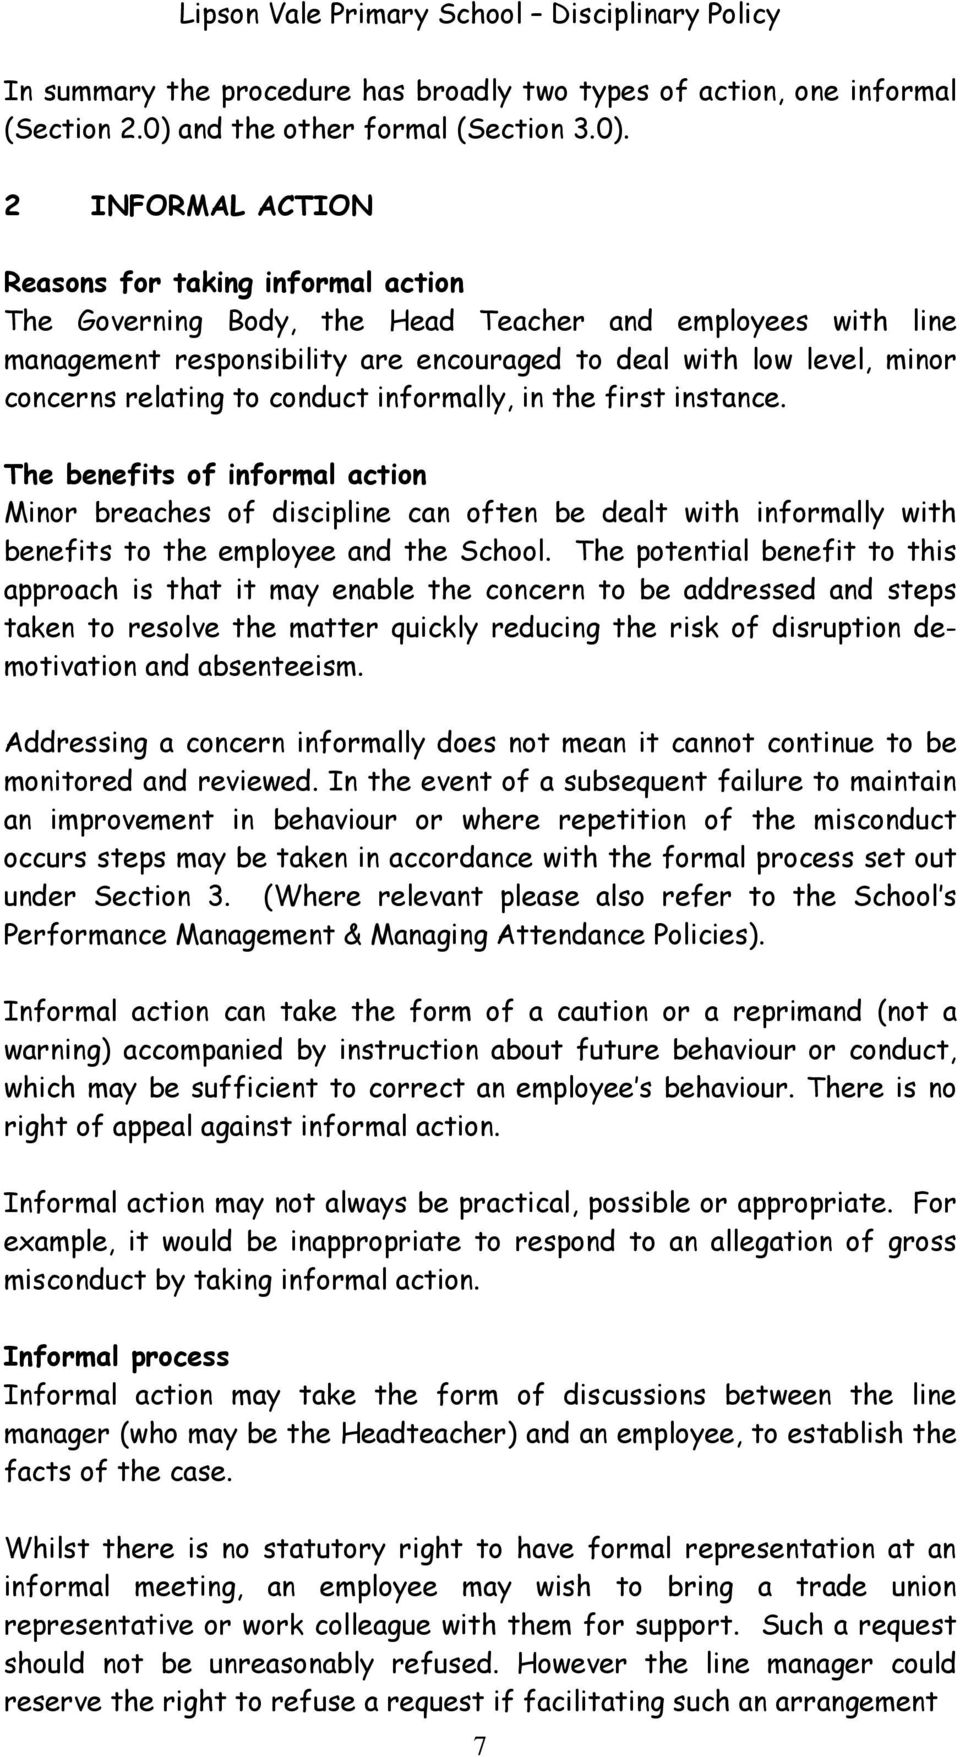 2 INFORMAL ACTION Reasons for taking informal action The Governing Body, the Head Teacher and employees with line management responsibility are encouraged to deal with low level, minor concerns